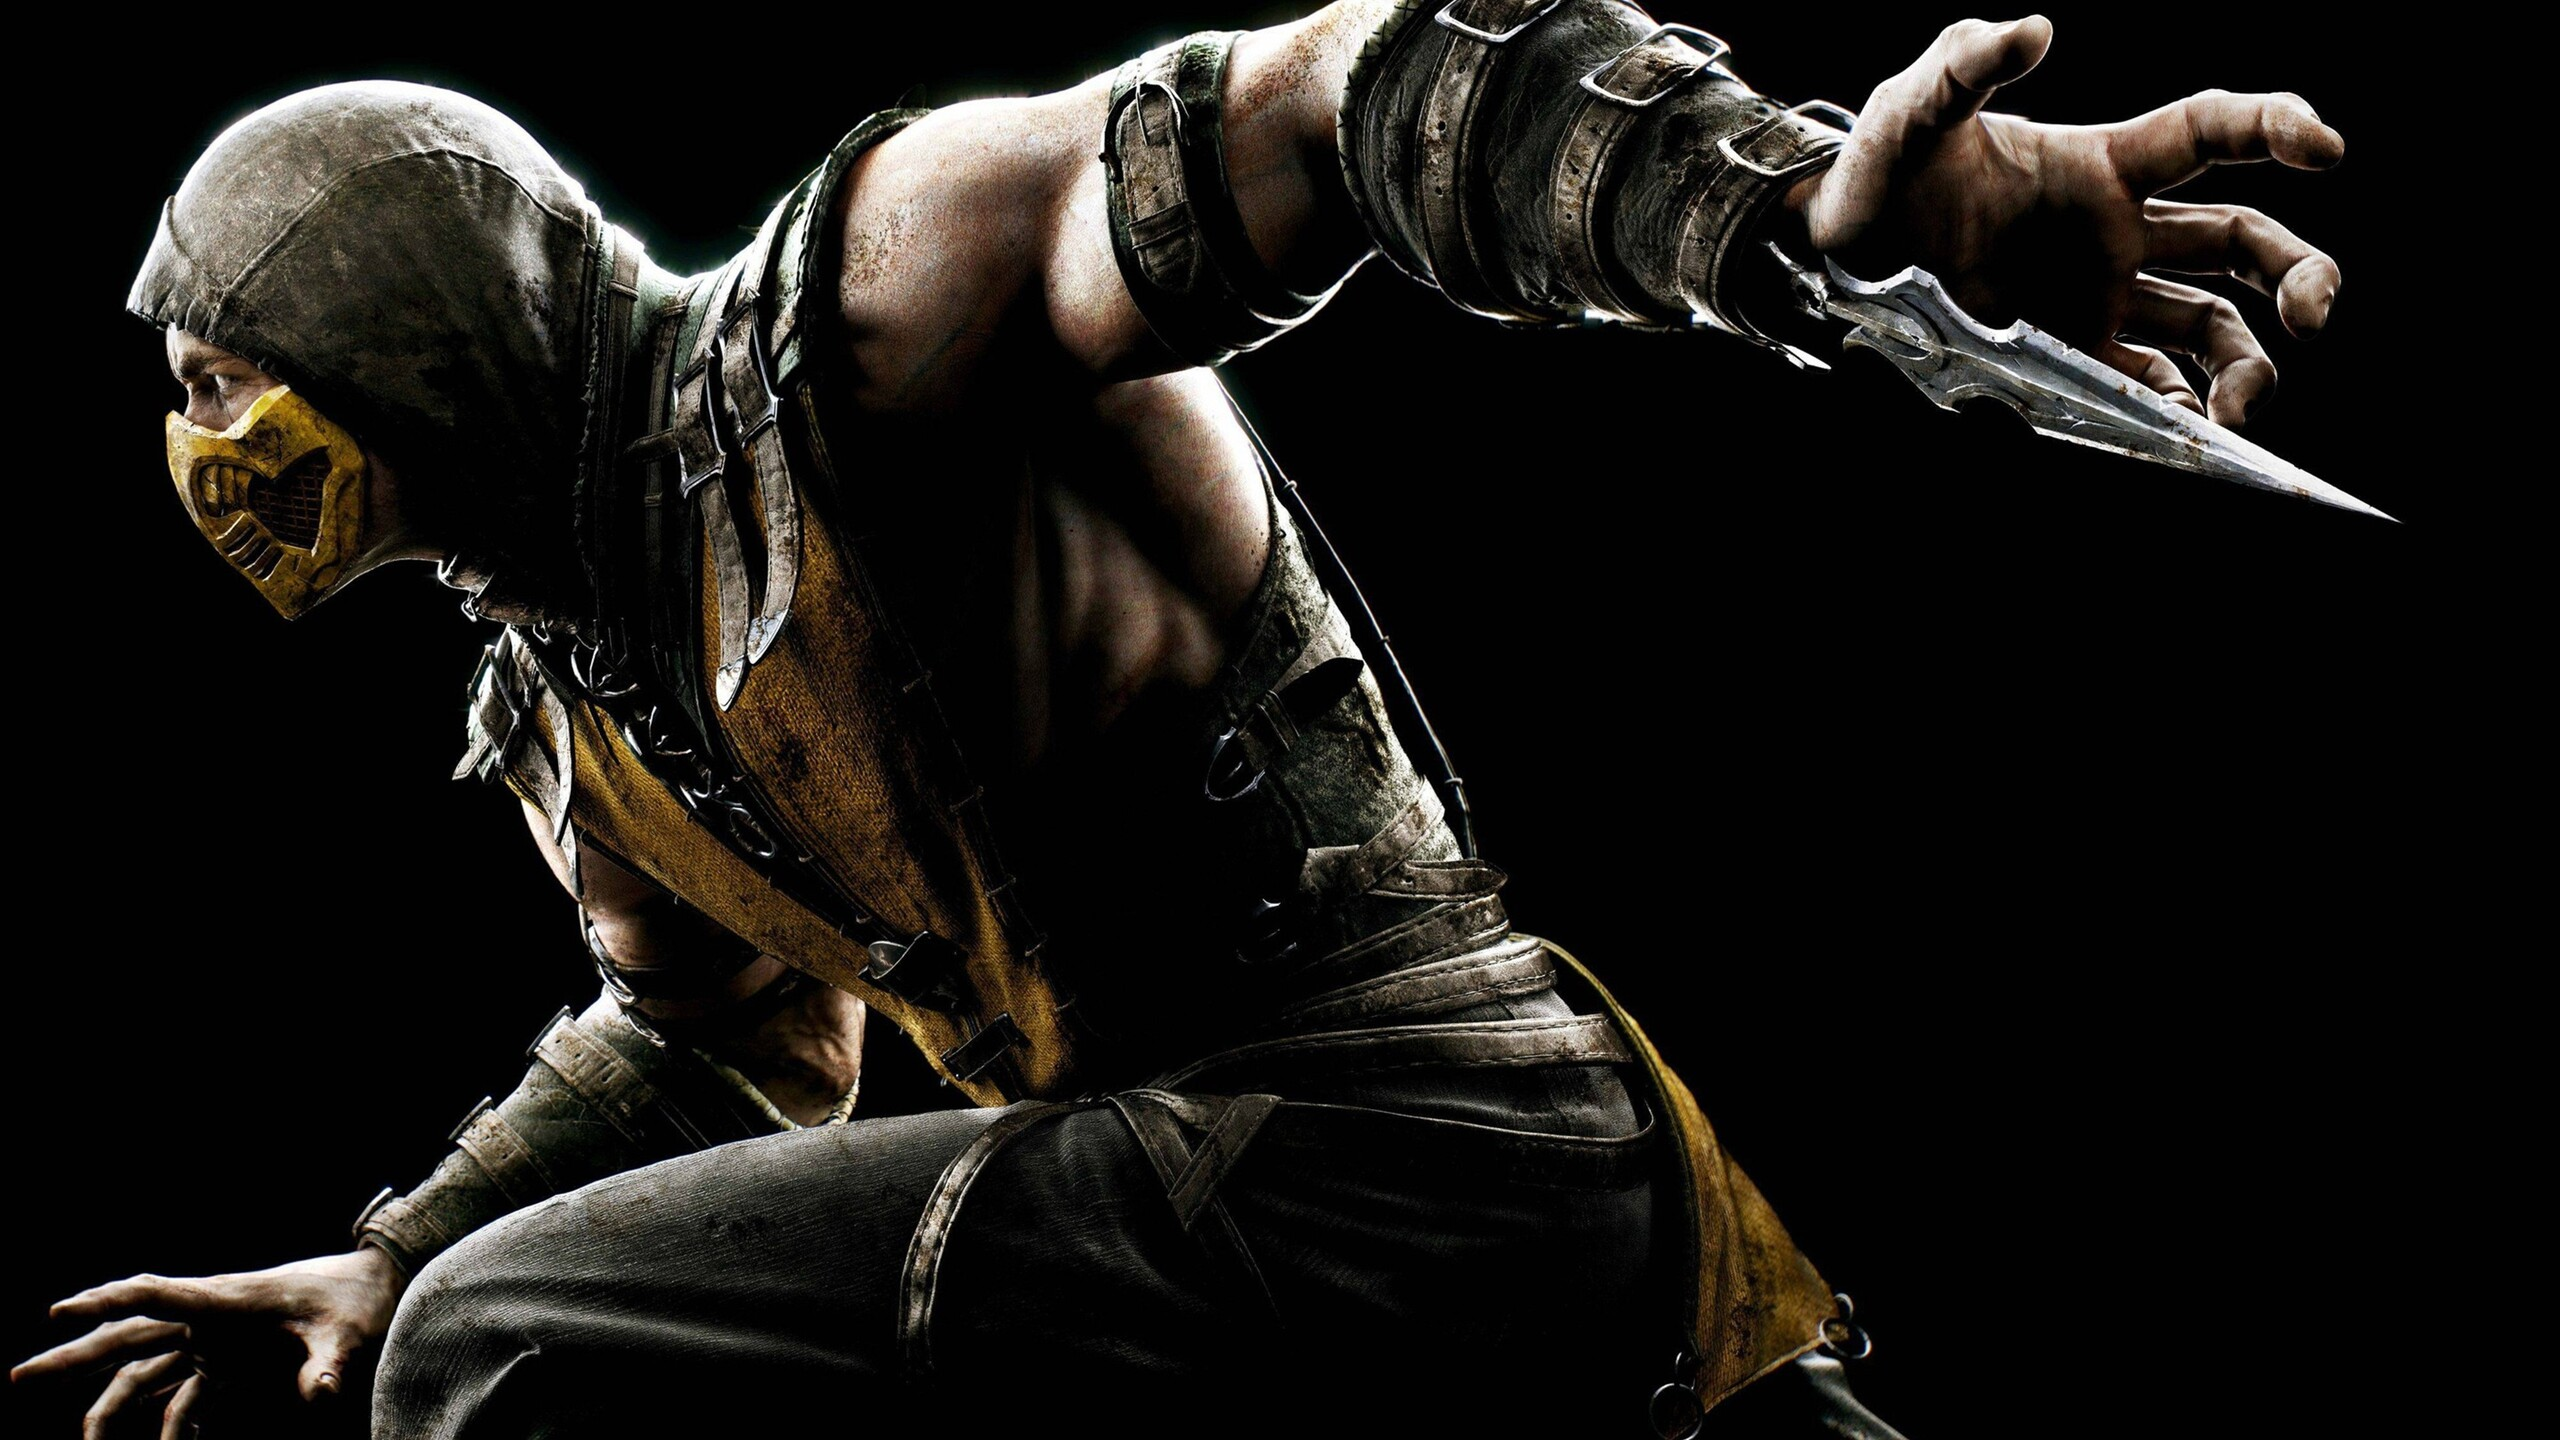 2560x1440 Mortal Kombat X Scorpion 1440p Resolution Hd 4k